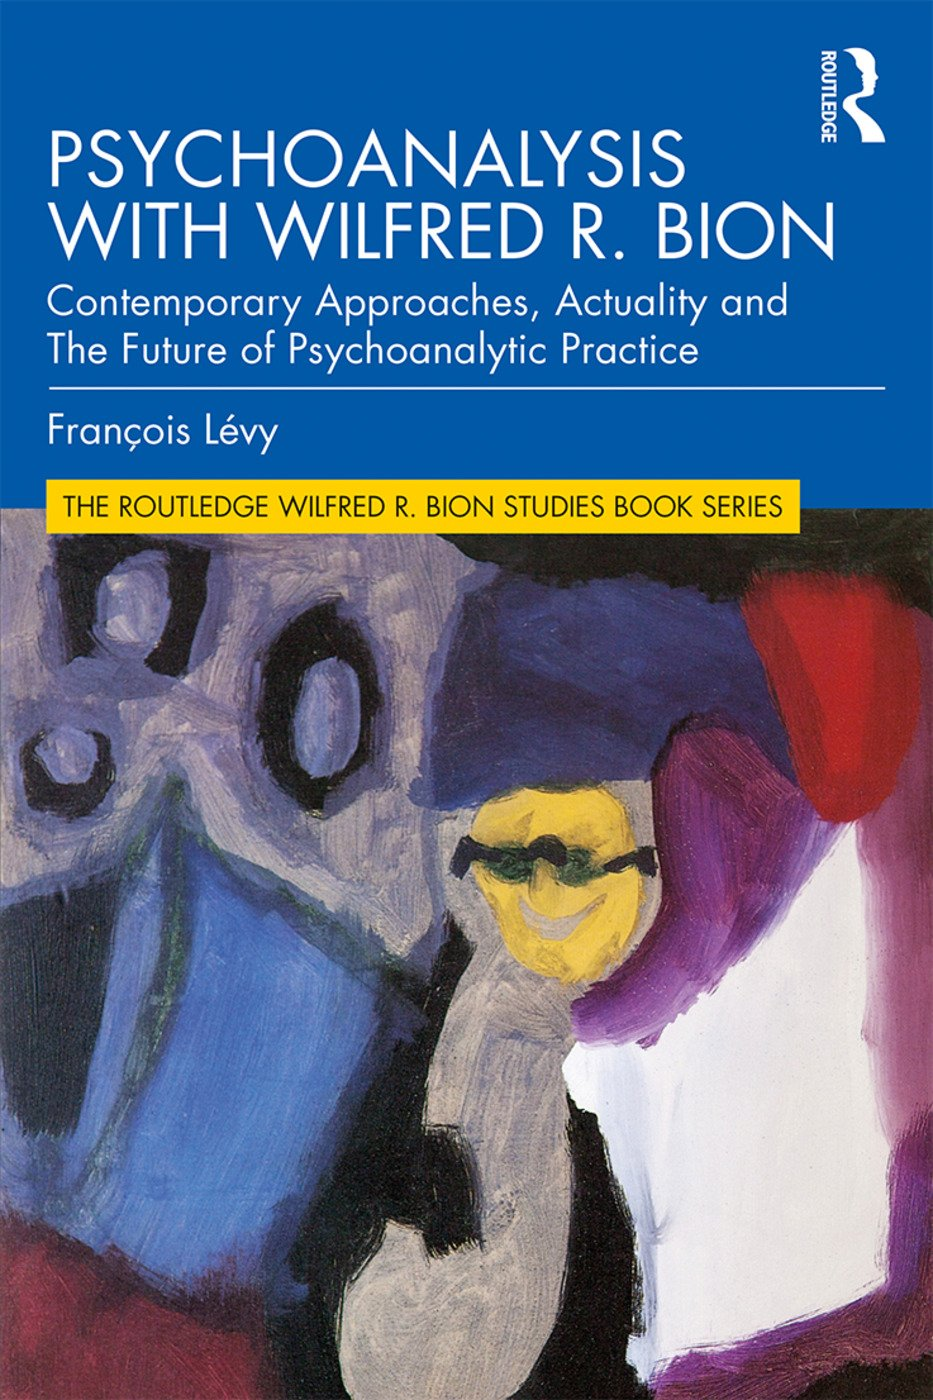 Psychoanalysis with Wilfred R. Bion: Contemporary Approaches, Actuality and The Future of Psychoanalytic Practice book cover